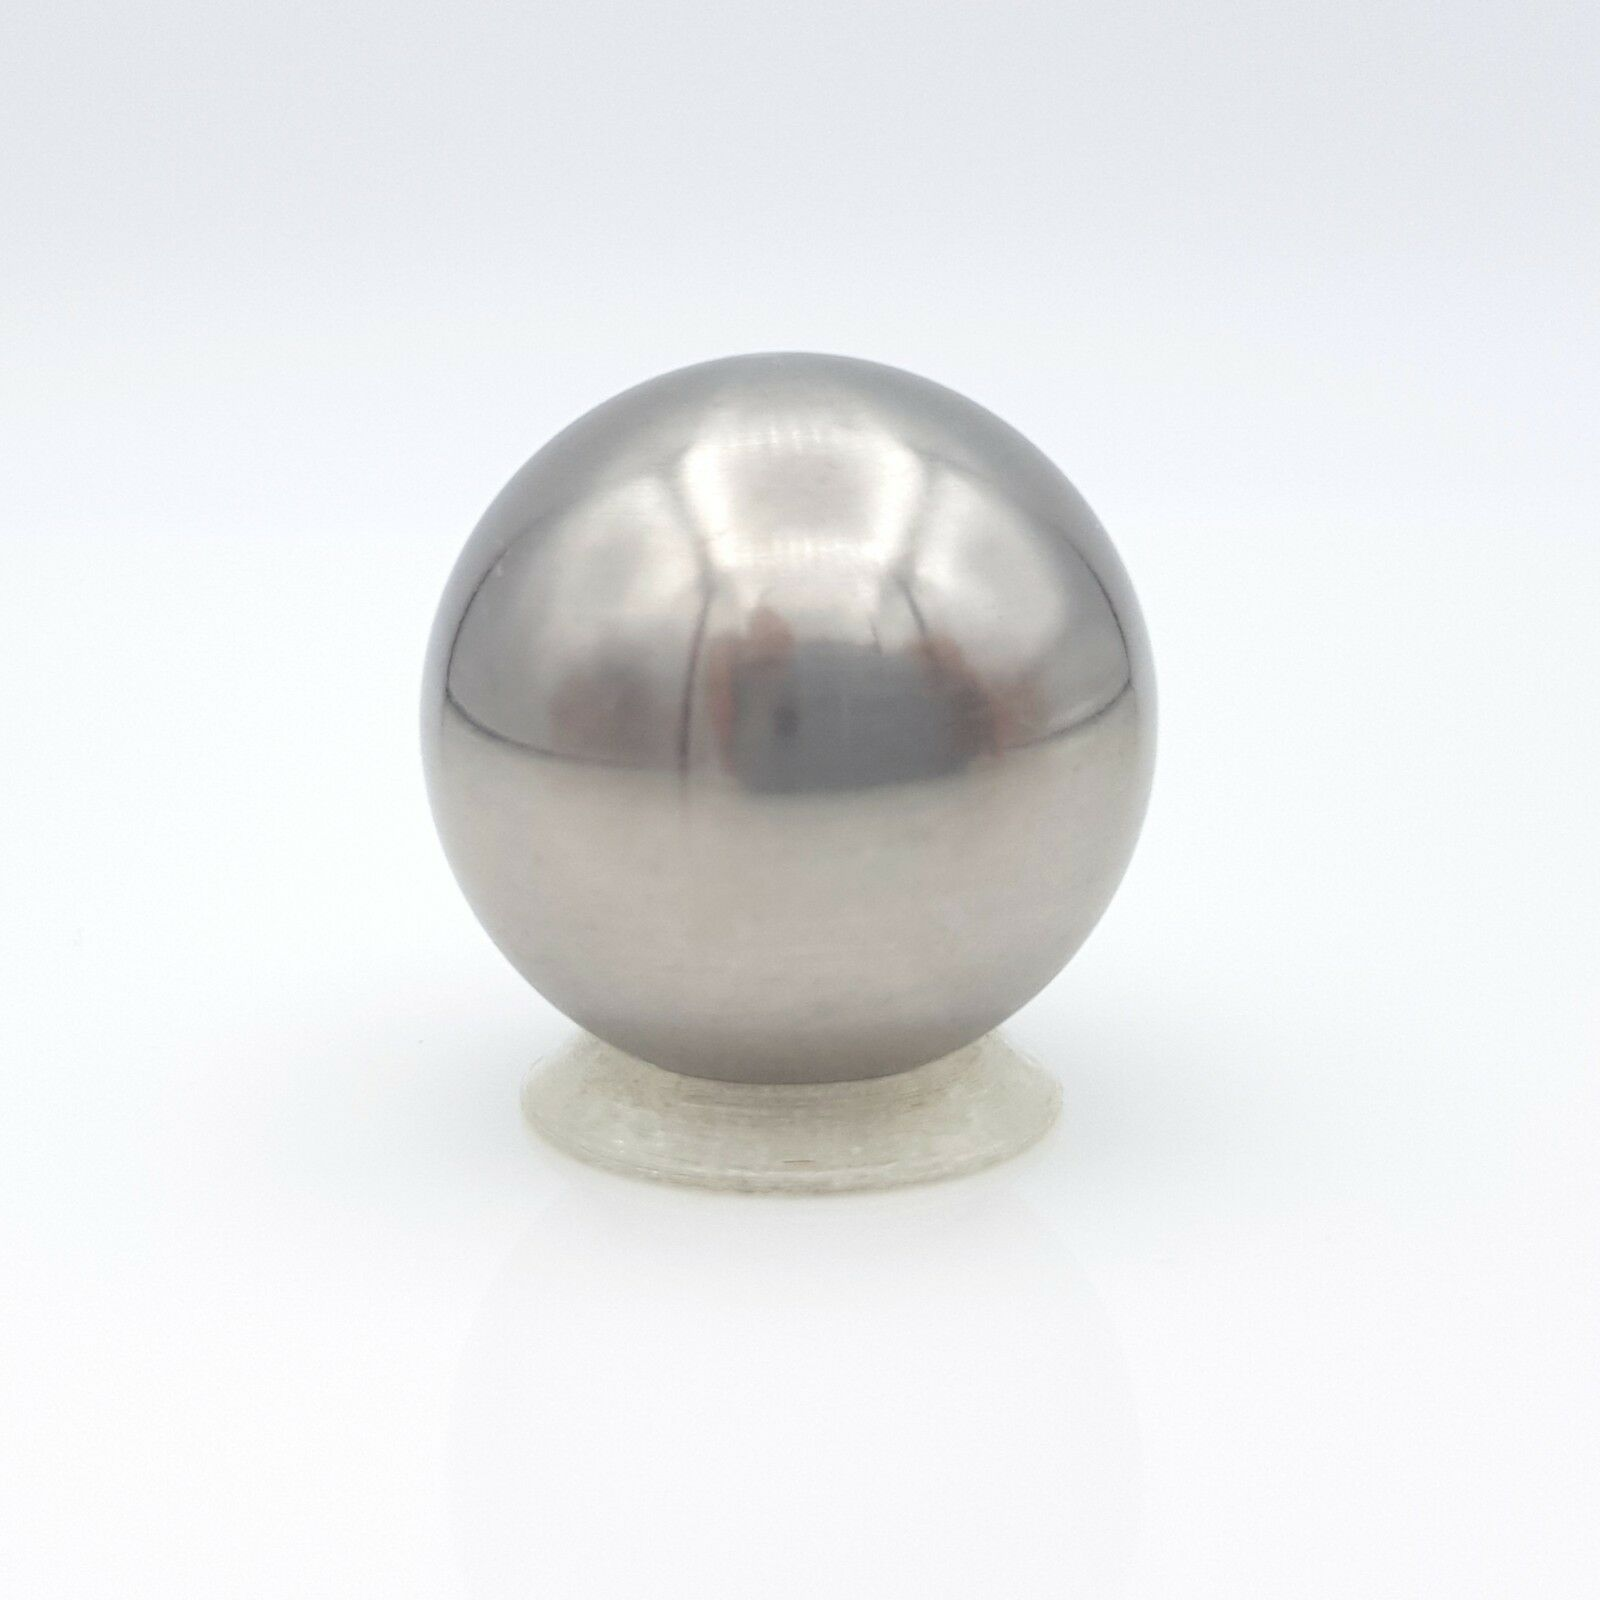 25 mm mm mm Tungsten SPHERE BALL incl. Stand 6a0e23